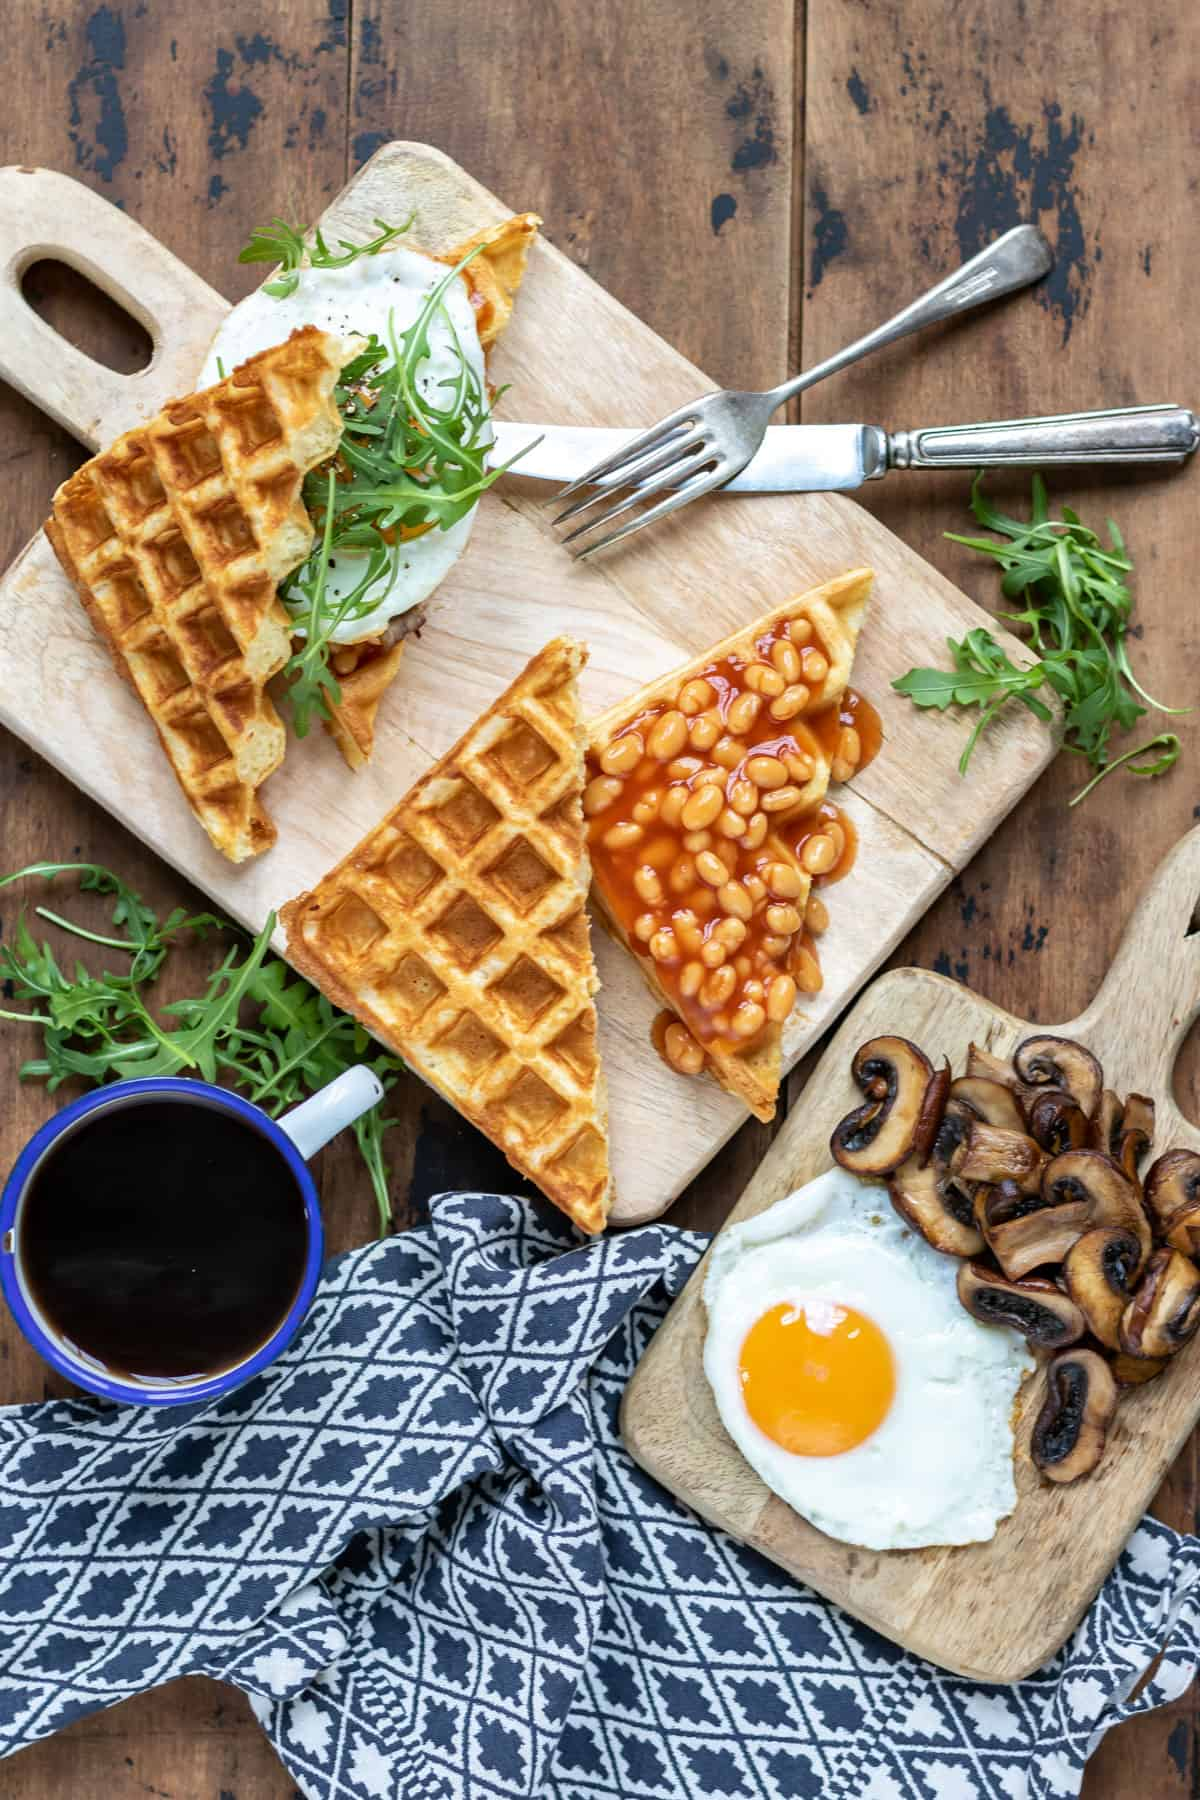 Waffles being topped with baked beans, mushrooms and eggs.